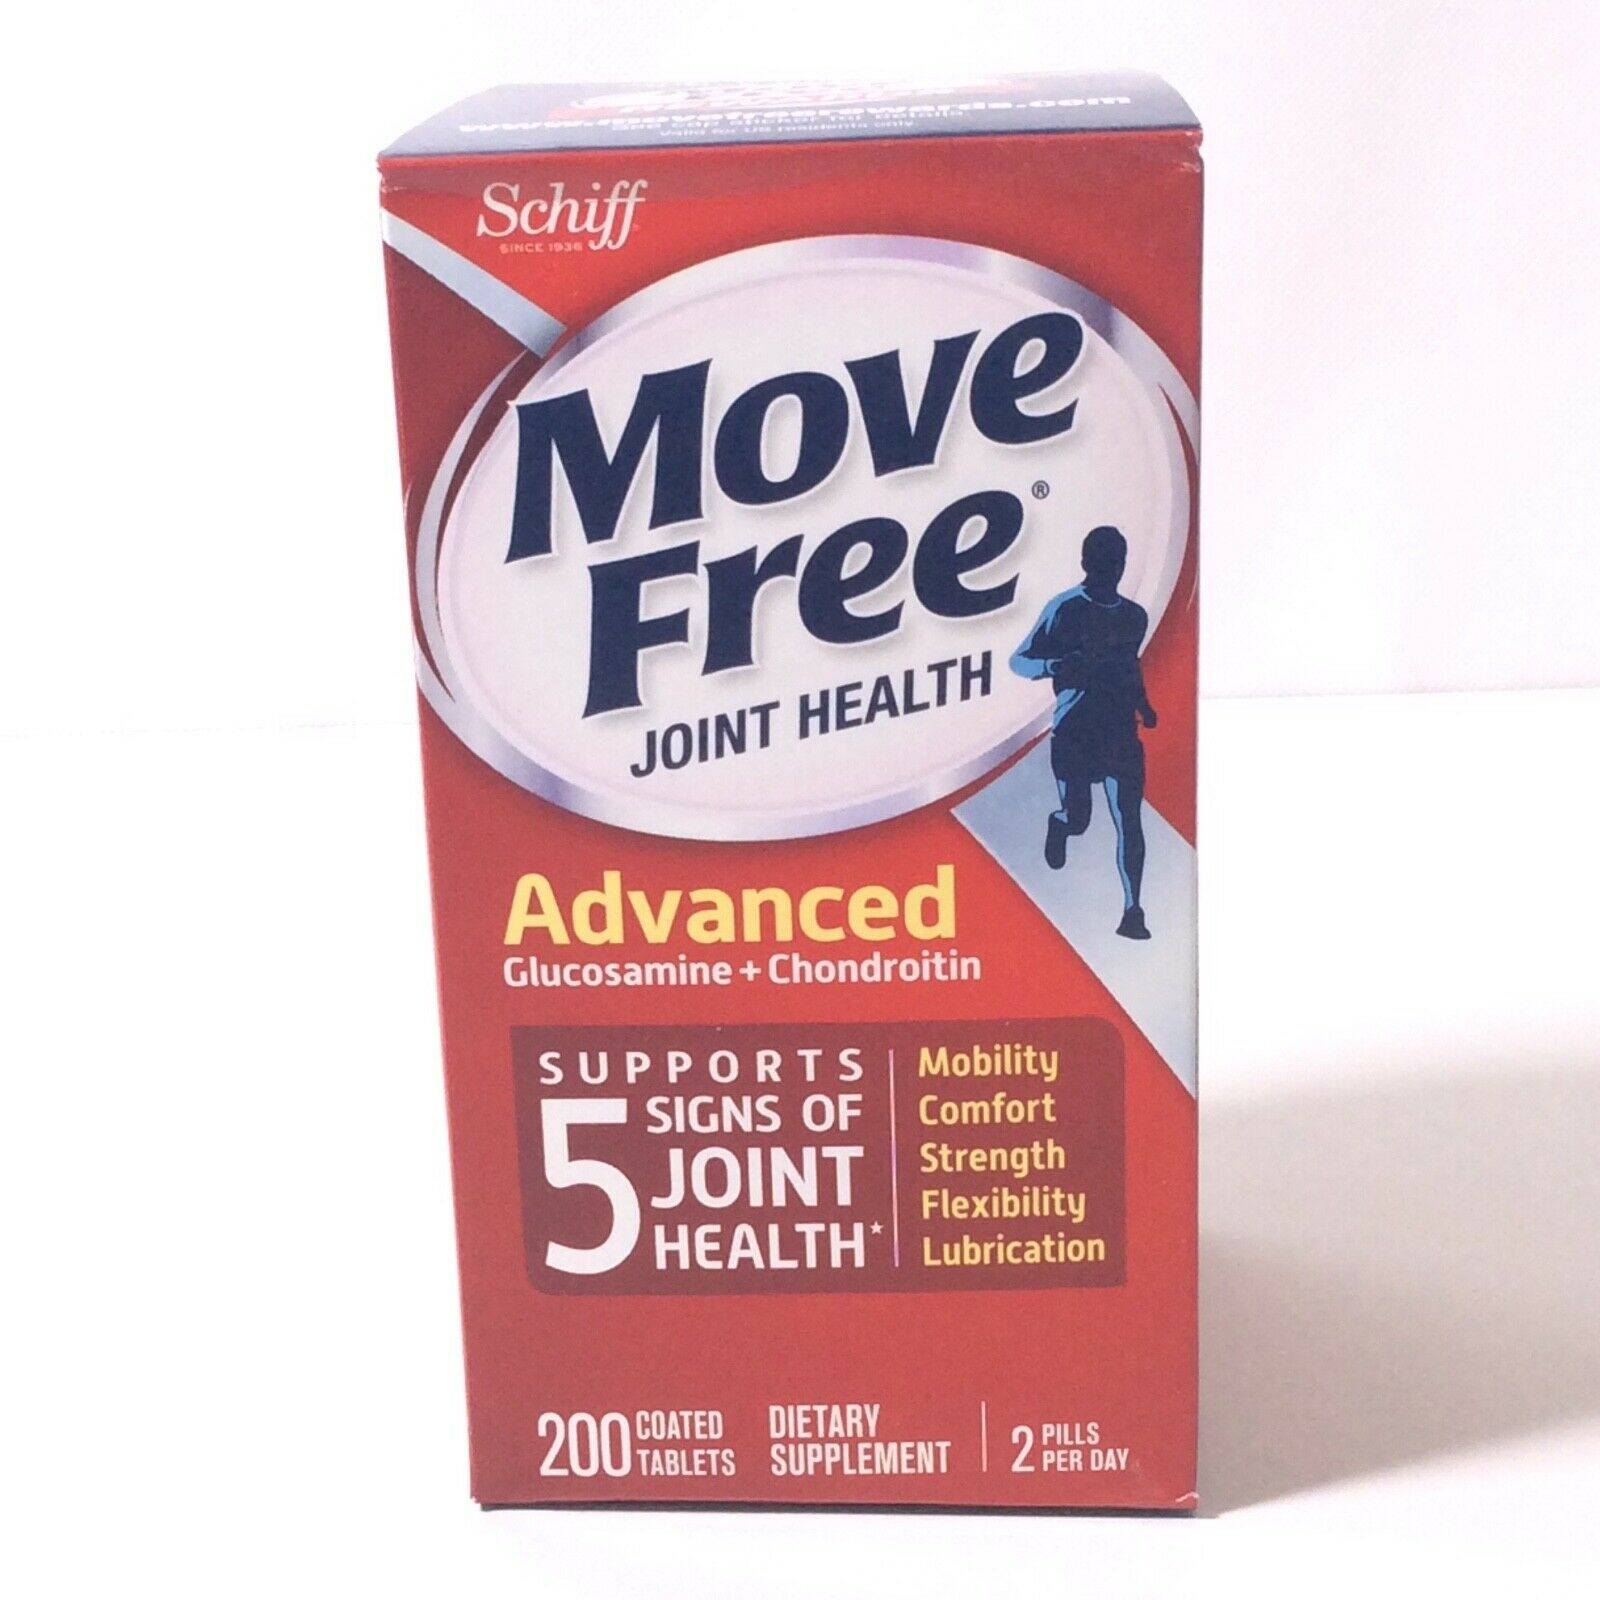 Schiff Move Free Advanced Joint Health Glucosamine Chondroit